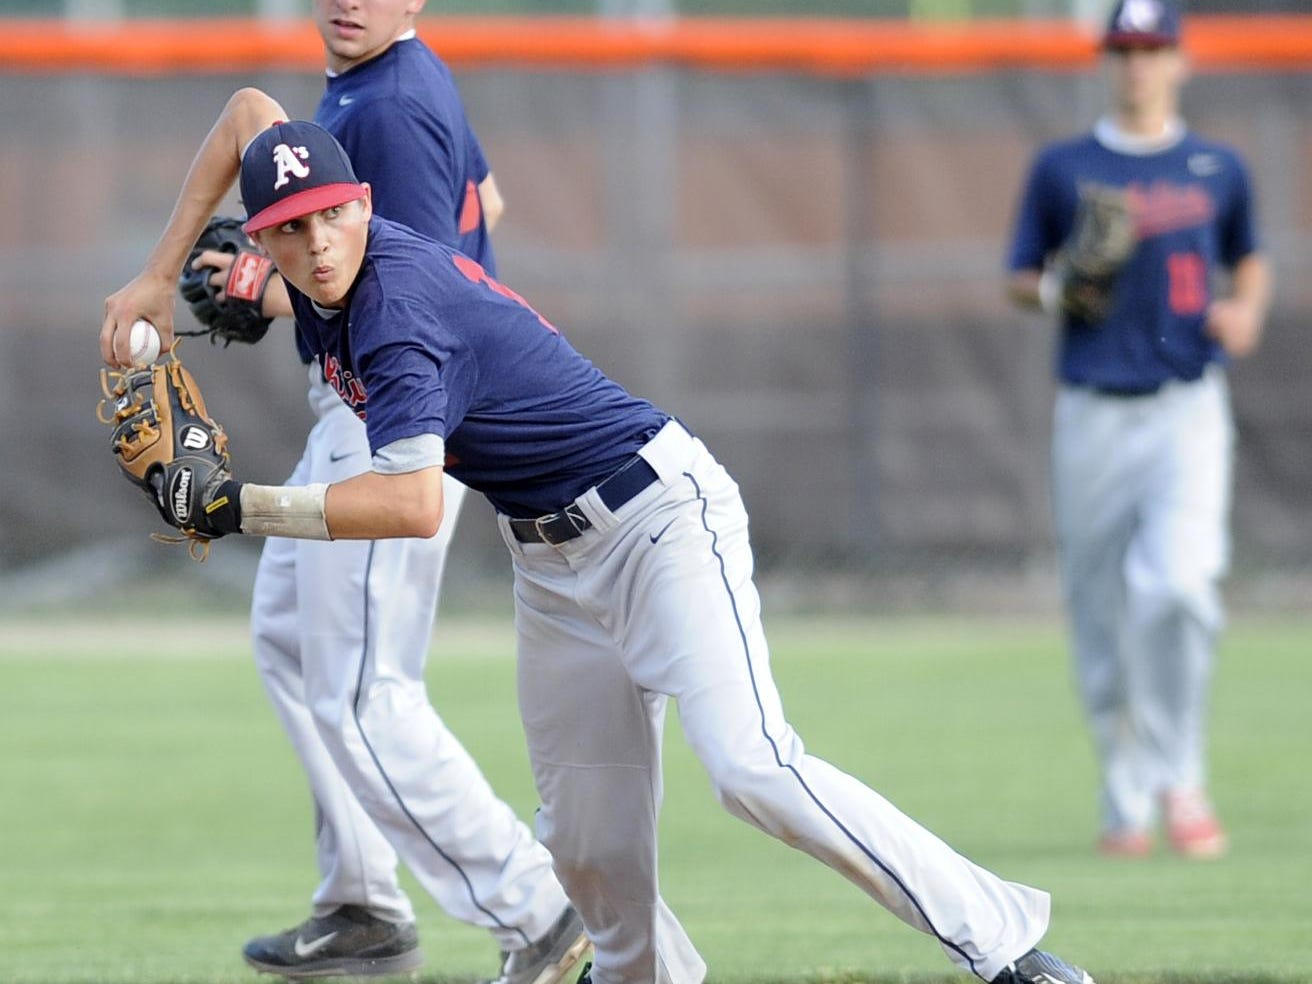 Licking County 17U Athletics shortstop Cody Dennis throws to first after fielding a ground ball during a game earlier this summer. The A's have played a top-notch schedule to increase exposure for their players.